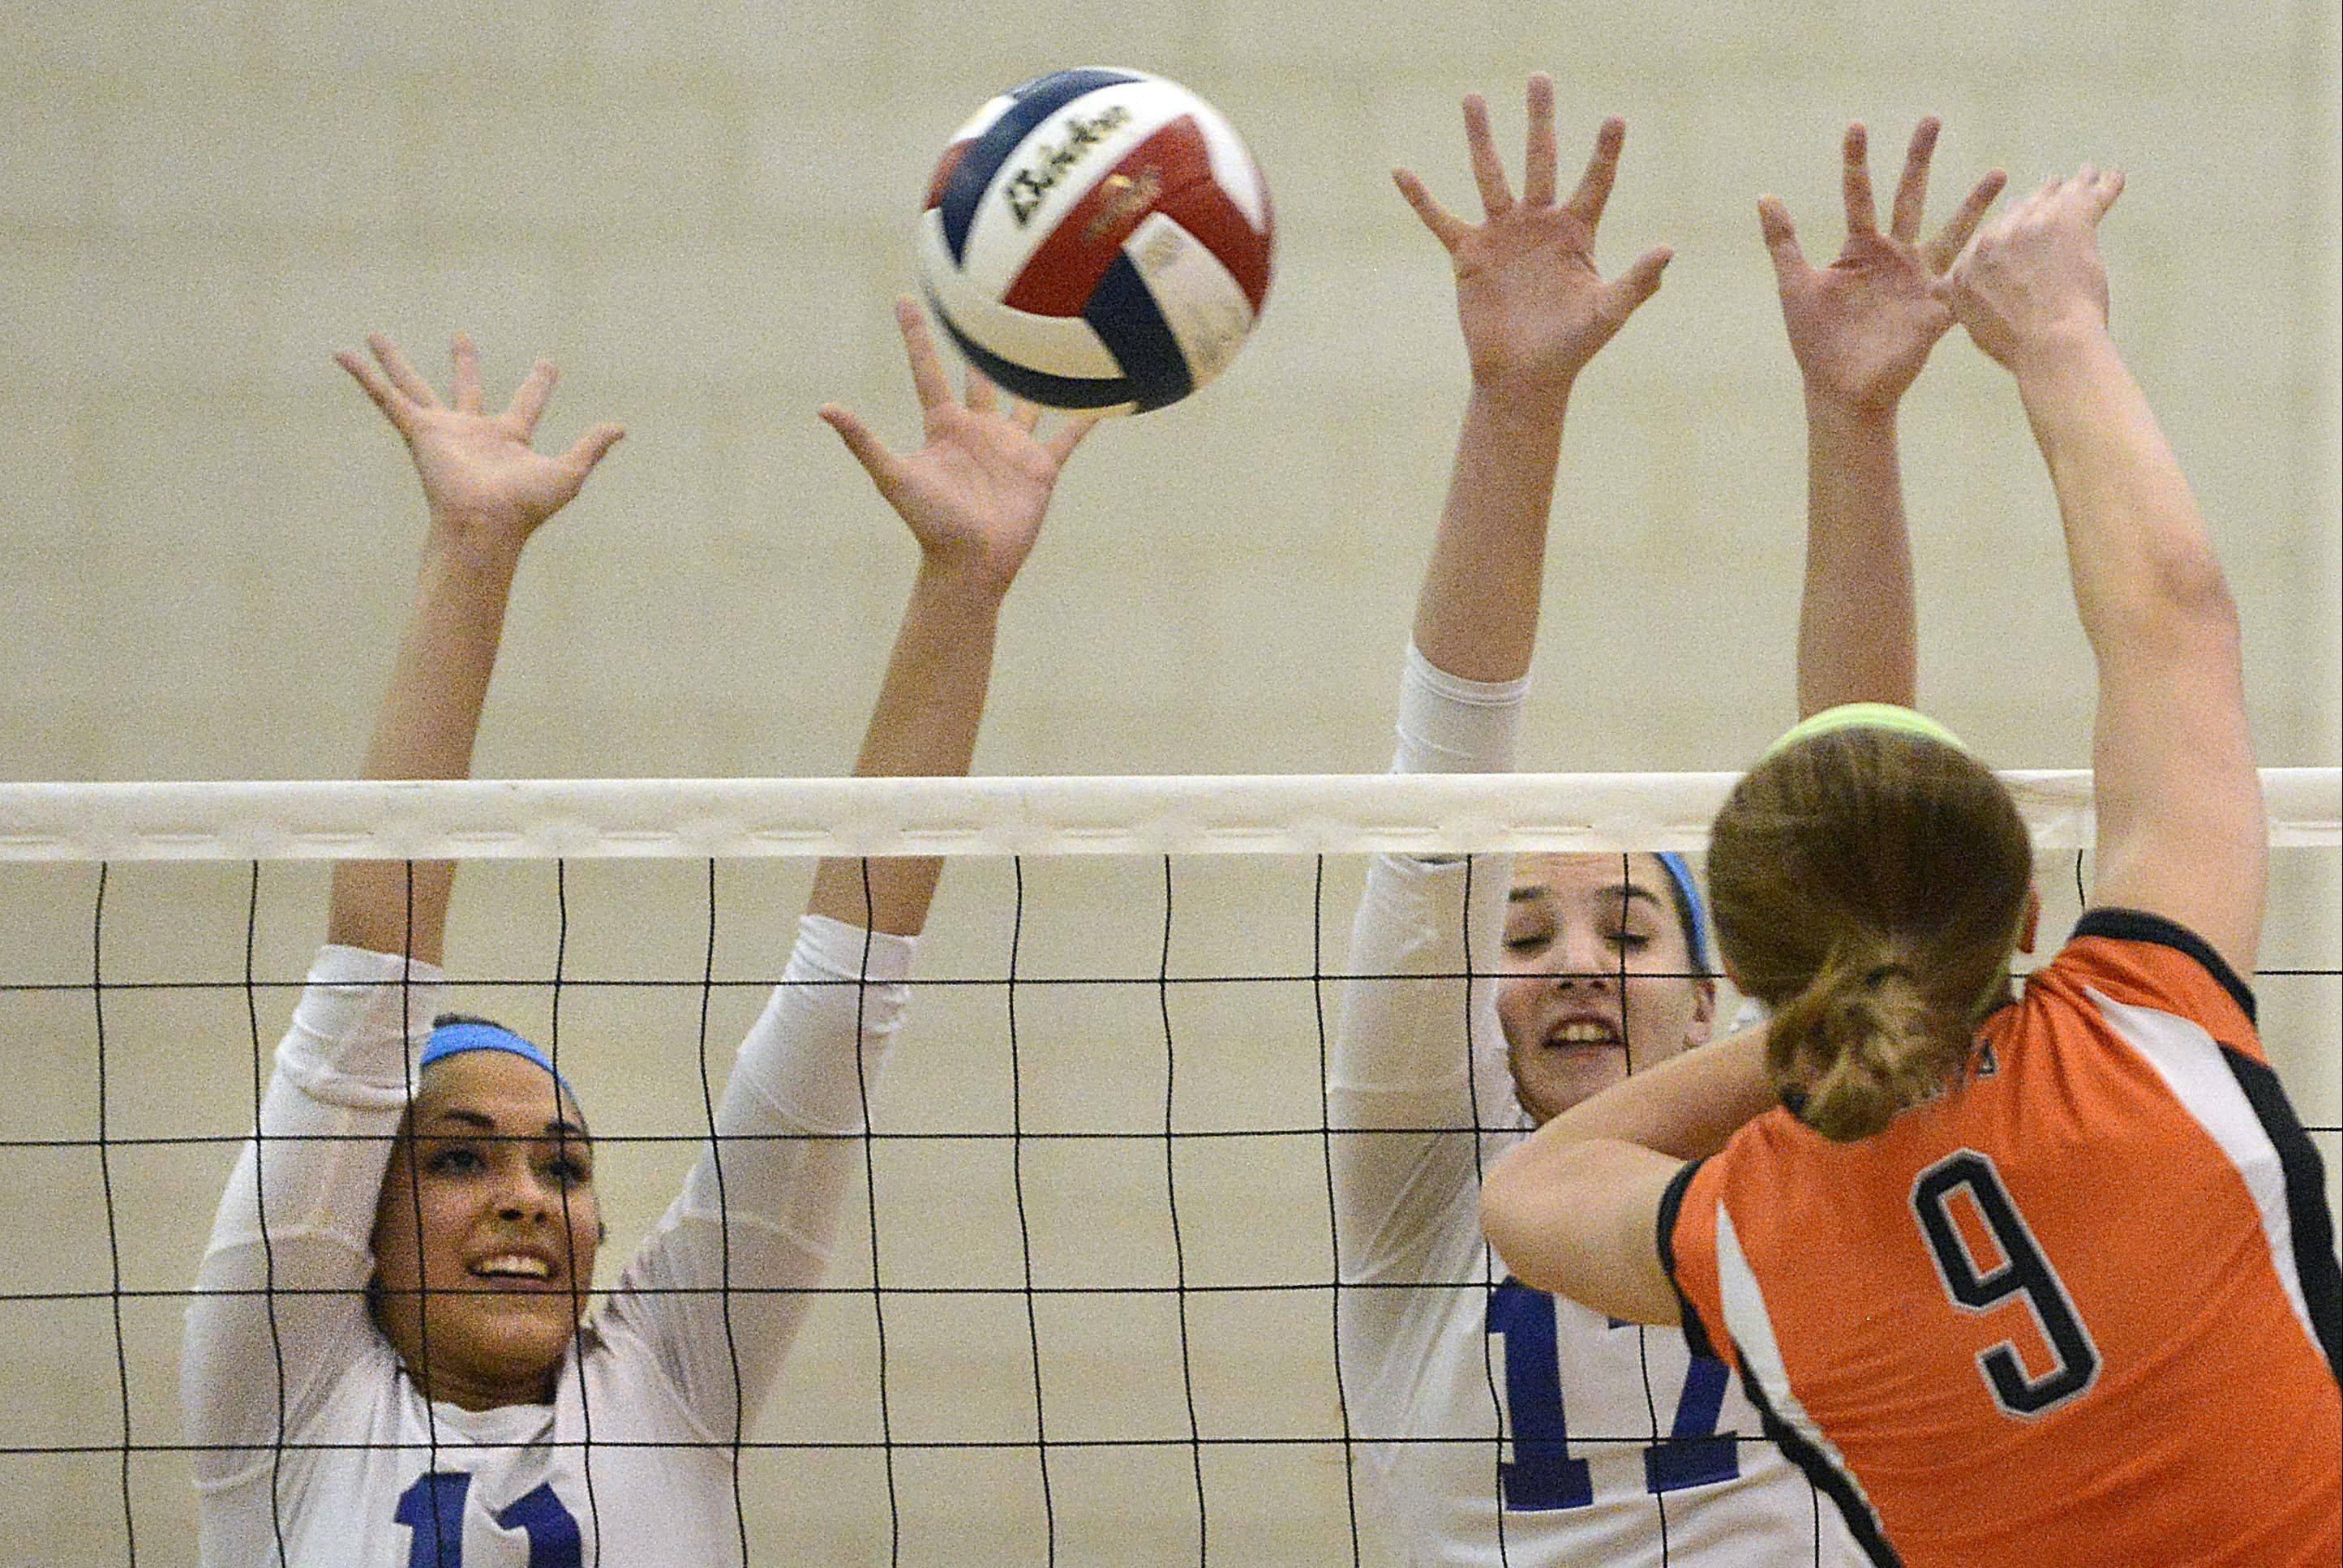 St. Charles North's Sophia DuVall, left, and Daley Krage block a shot by St. Charles East's Megan Schildmeyer Tuesday in Geneva.